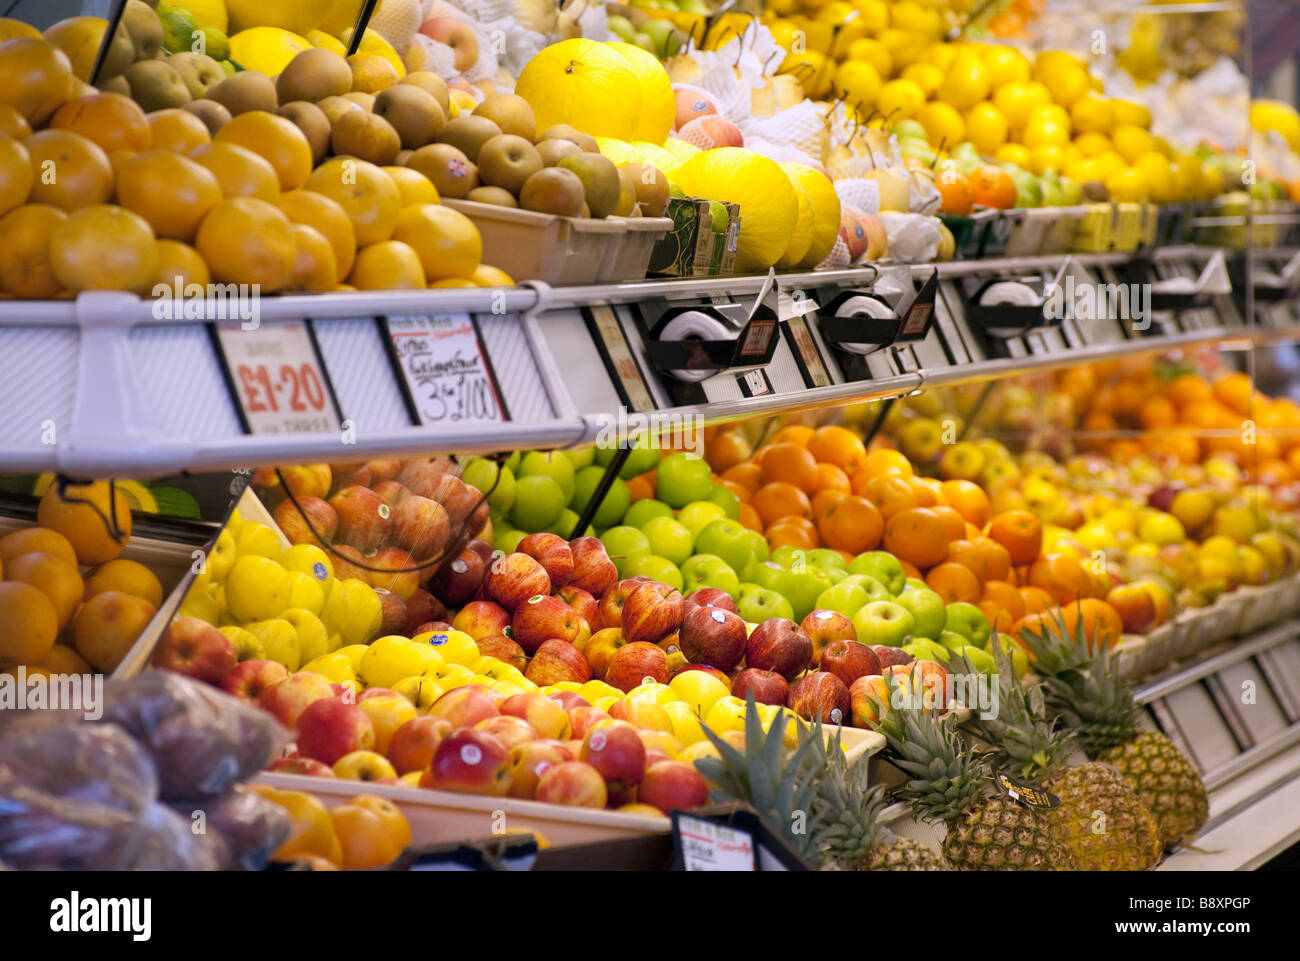 A selection of fruit inside a greengrocer's shop Stock Photo